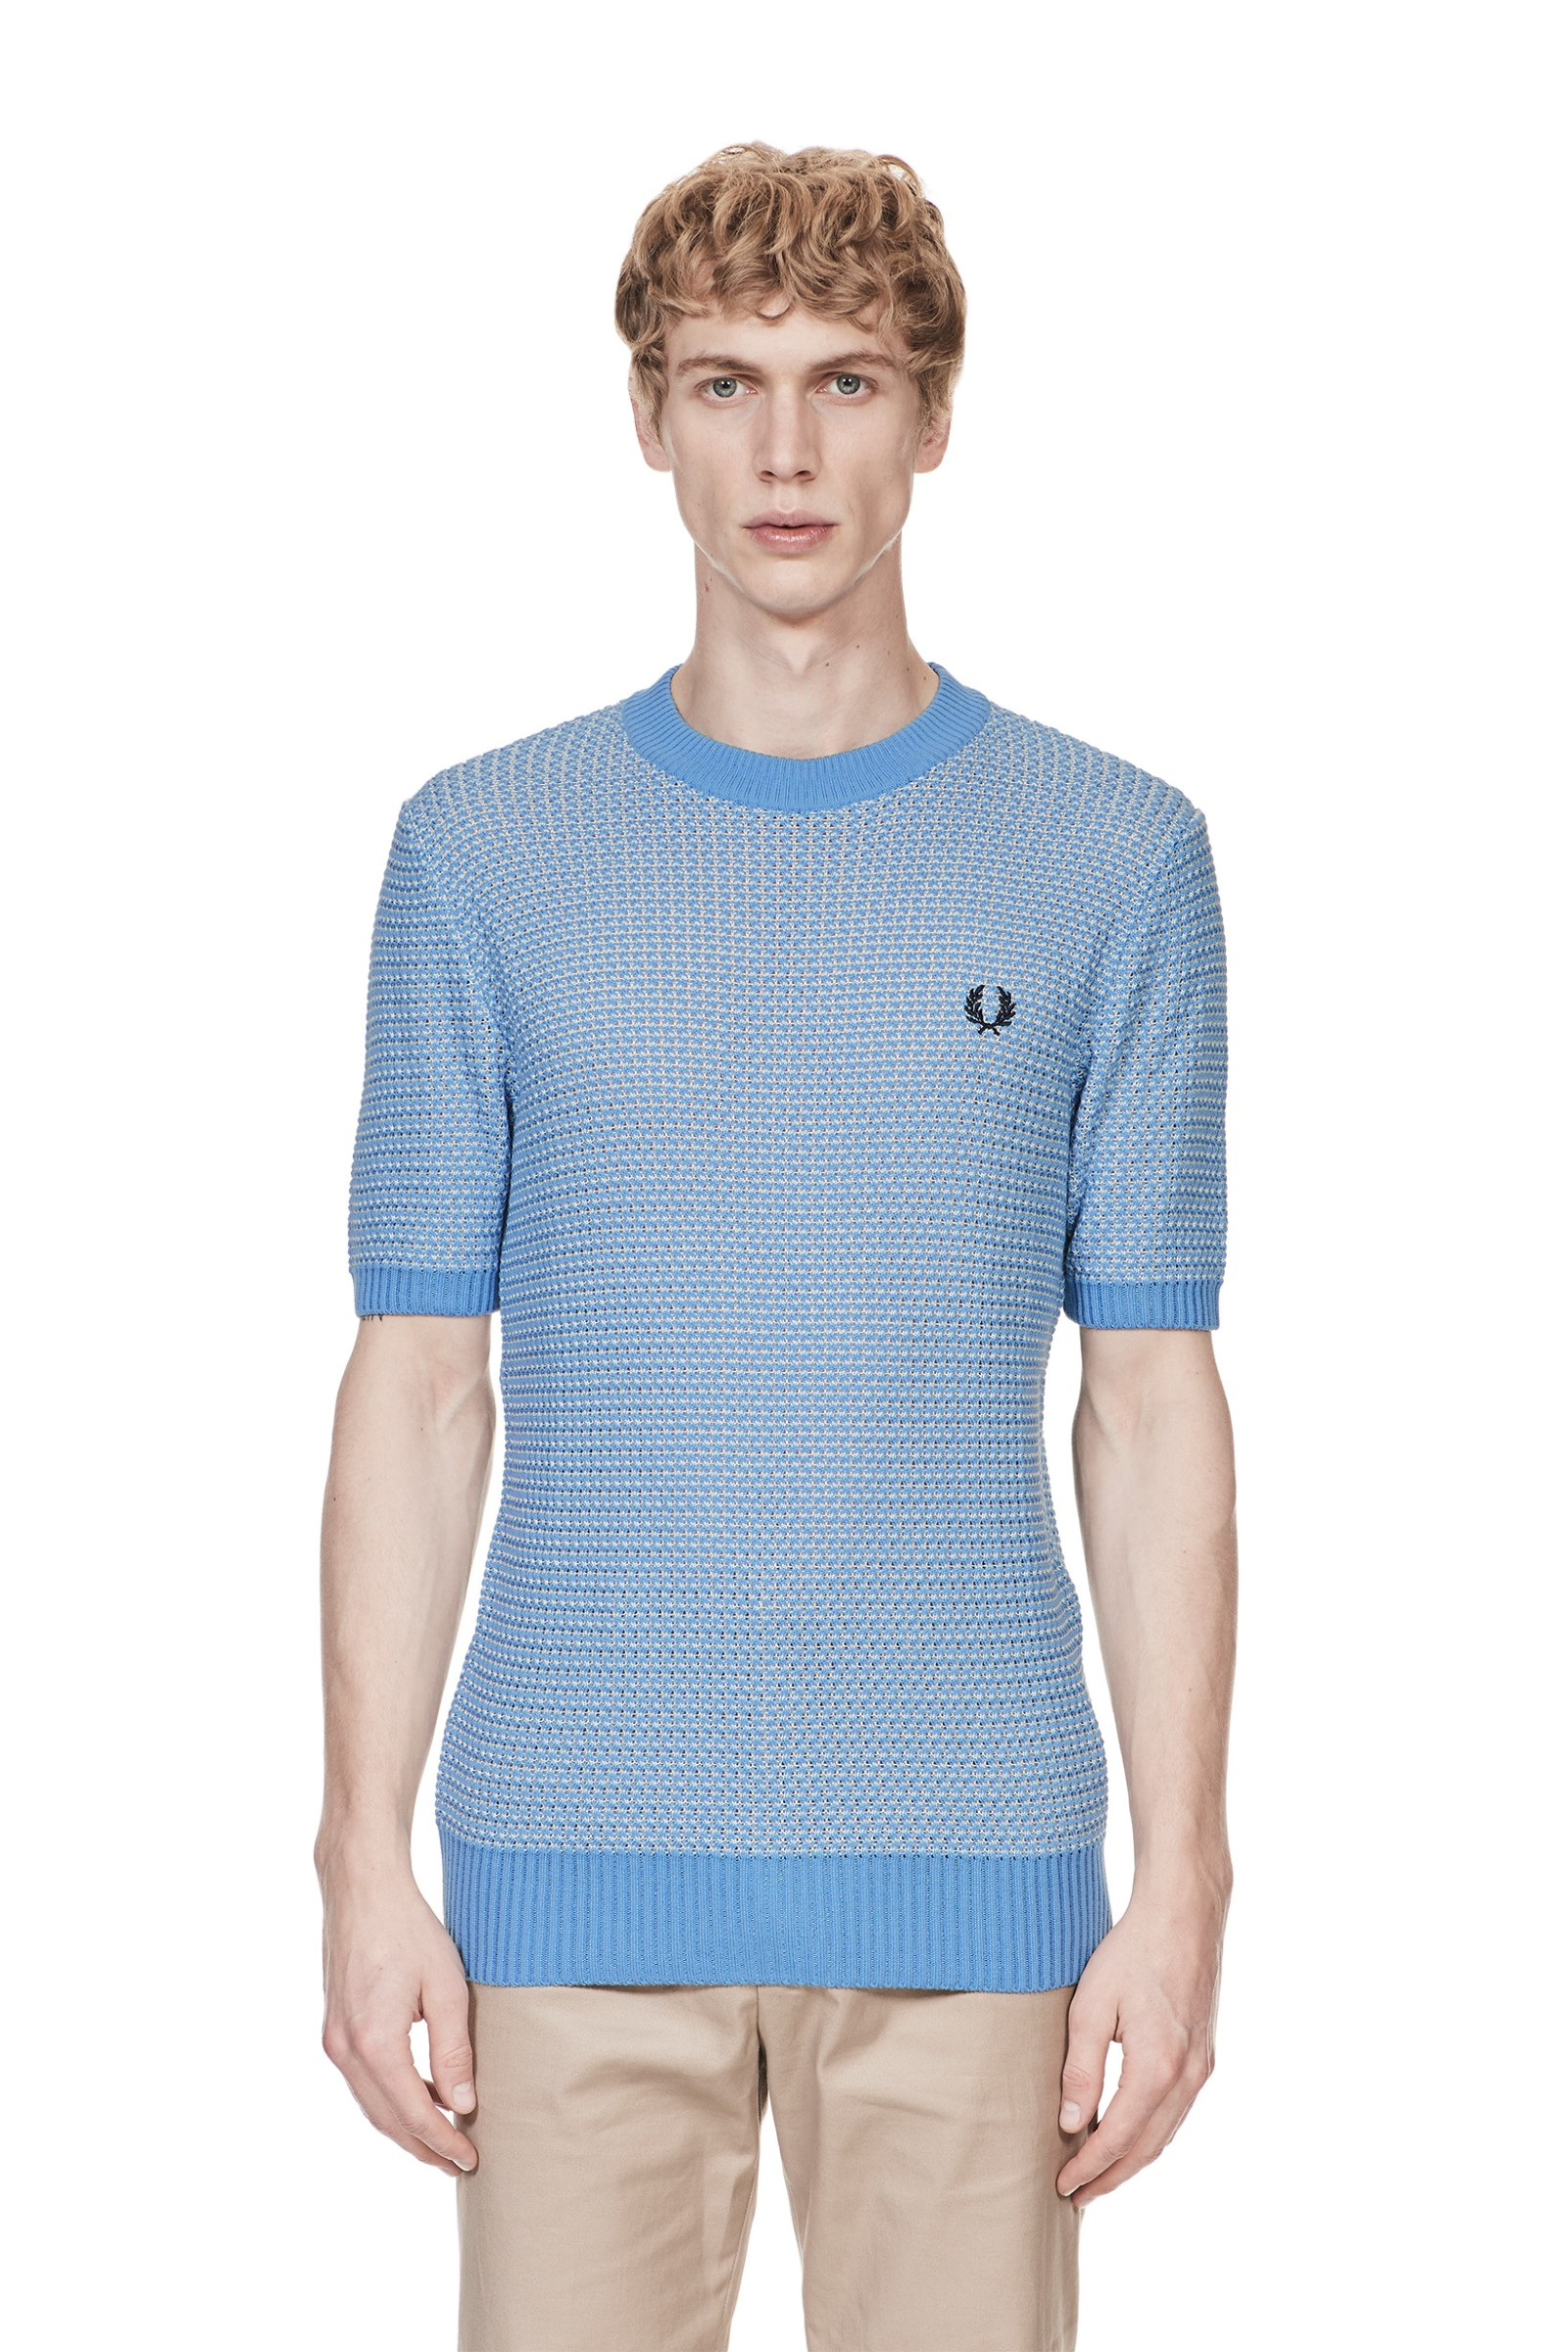 Fred Perry Reissues Two Colour Knitted Crew Neck